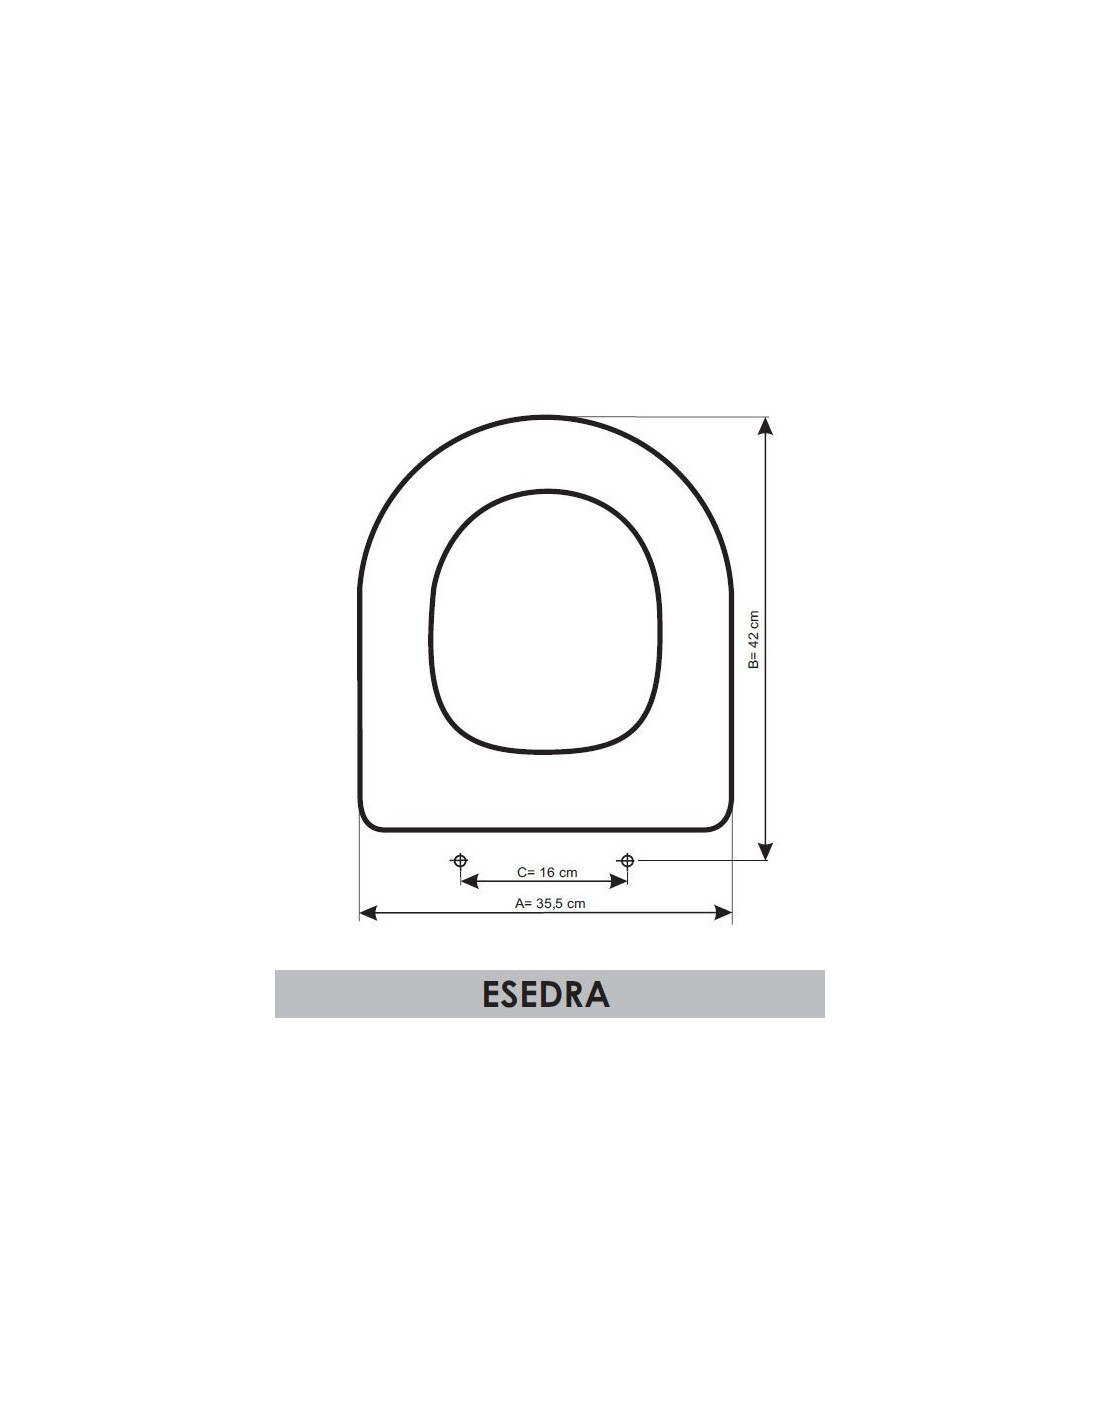 Serie Esedra Ideal Standard Of Seat Wc Ideal Standard Esedra Adaptable In Resiwood